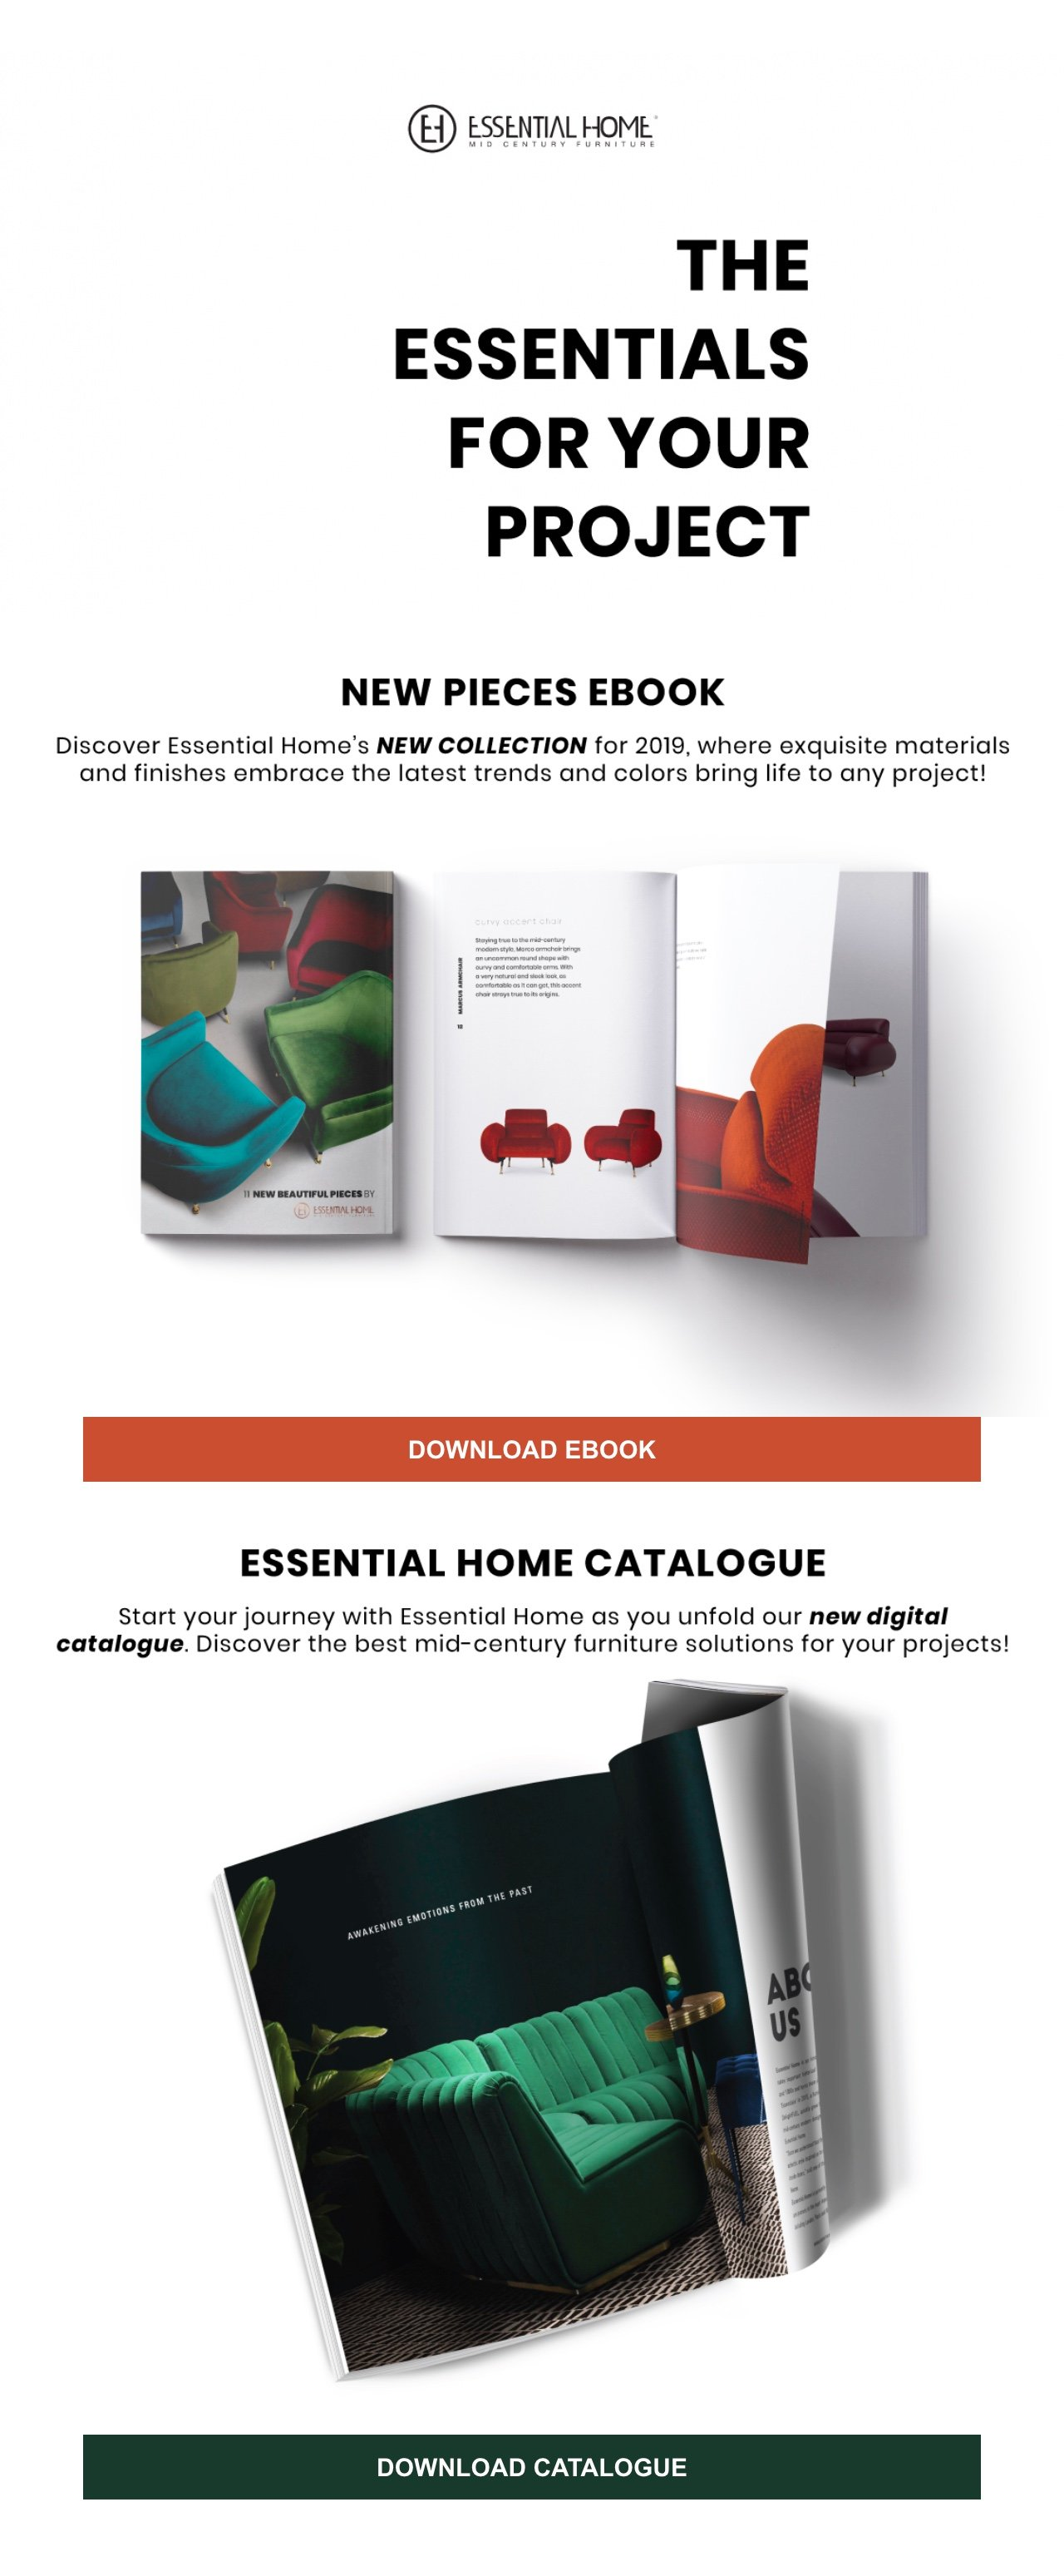 Essential Home newsletter example